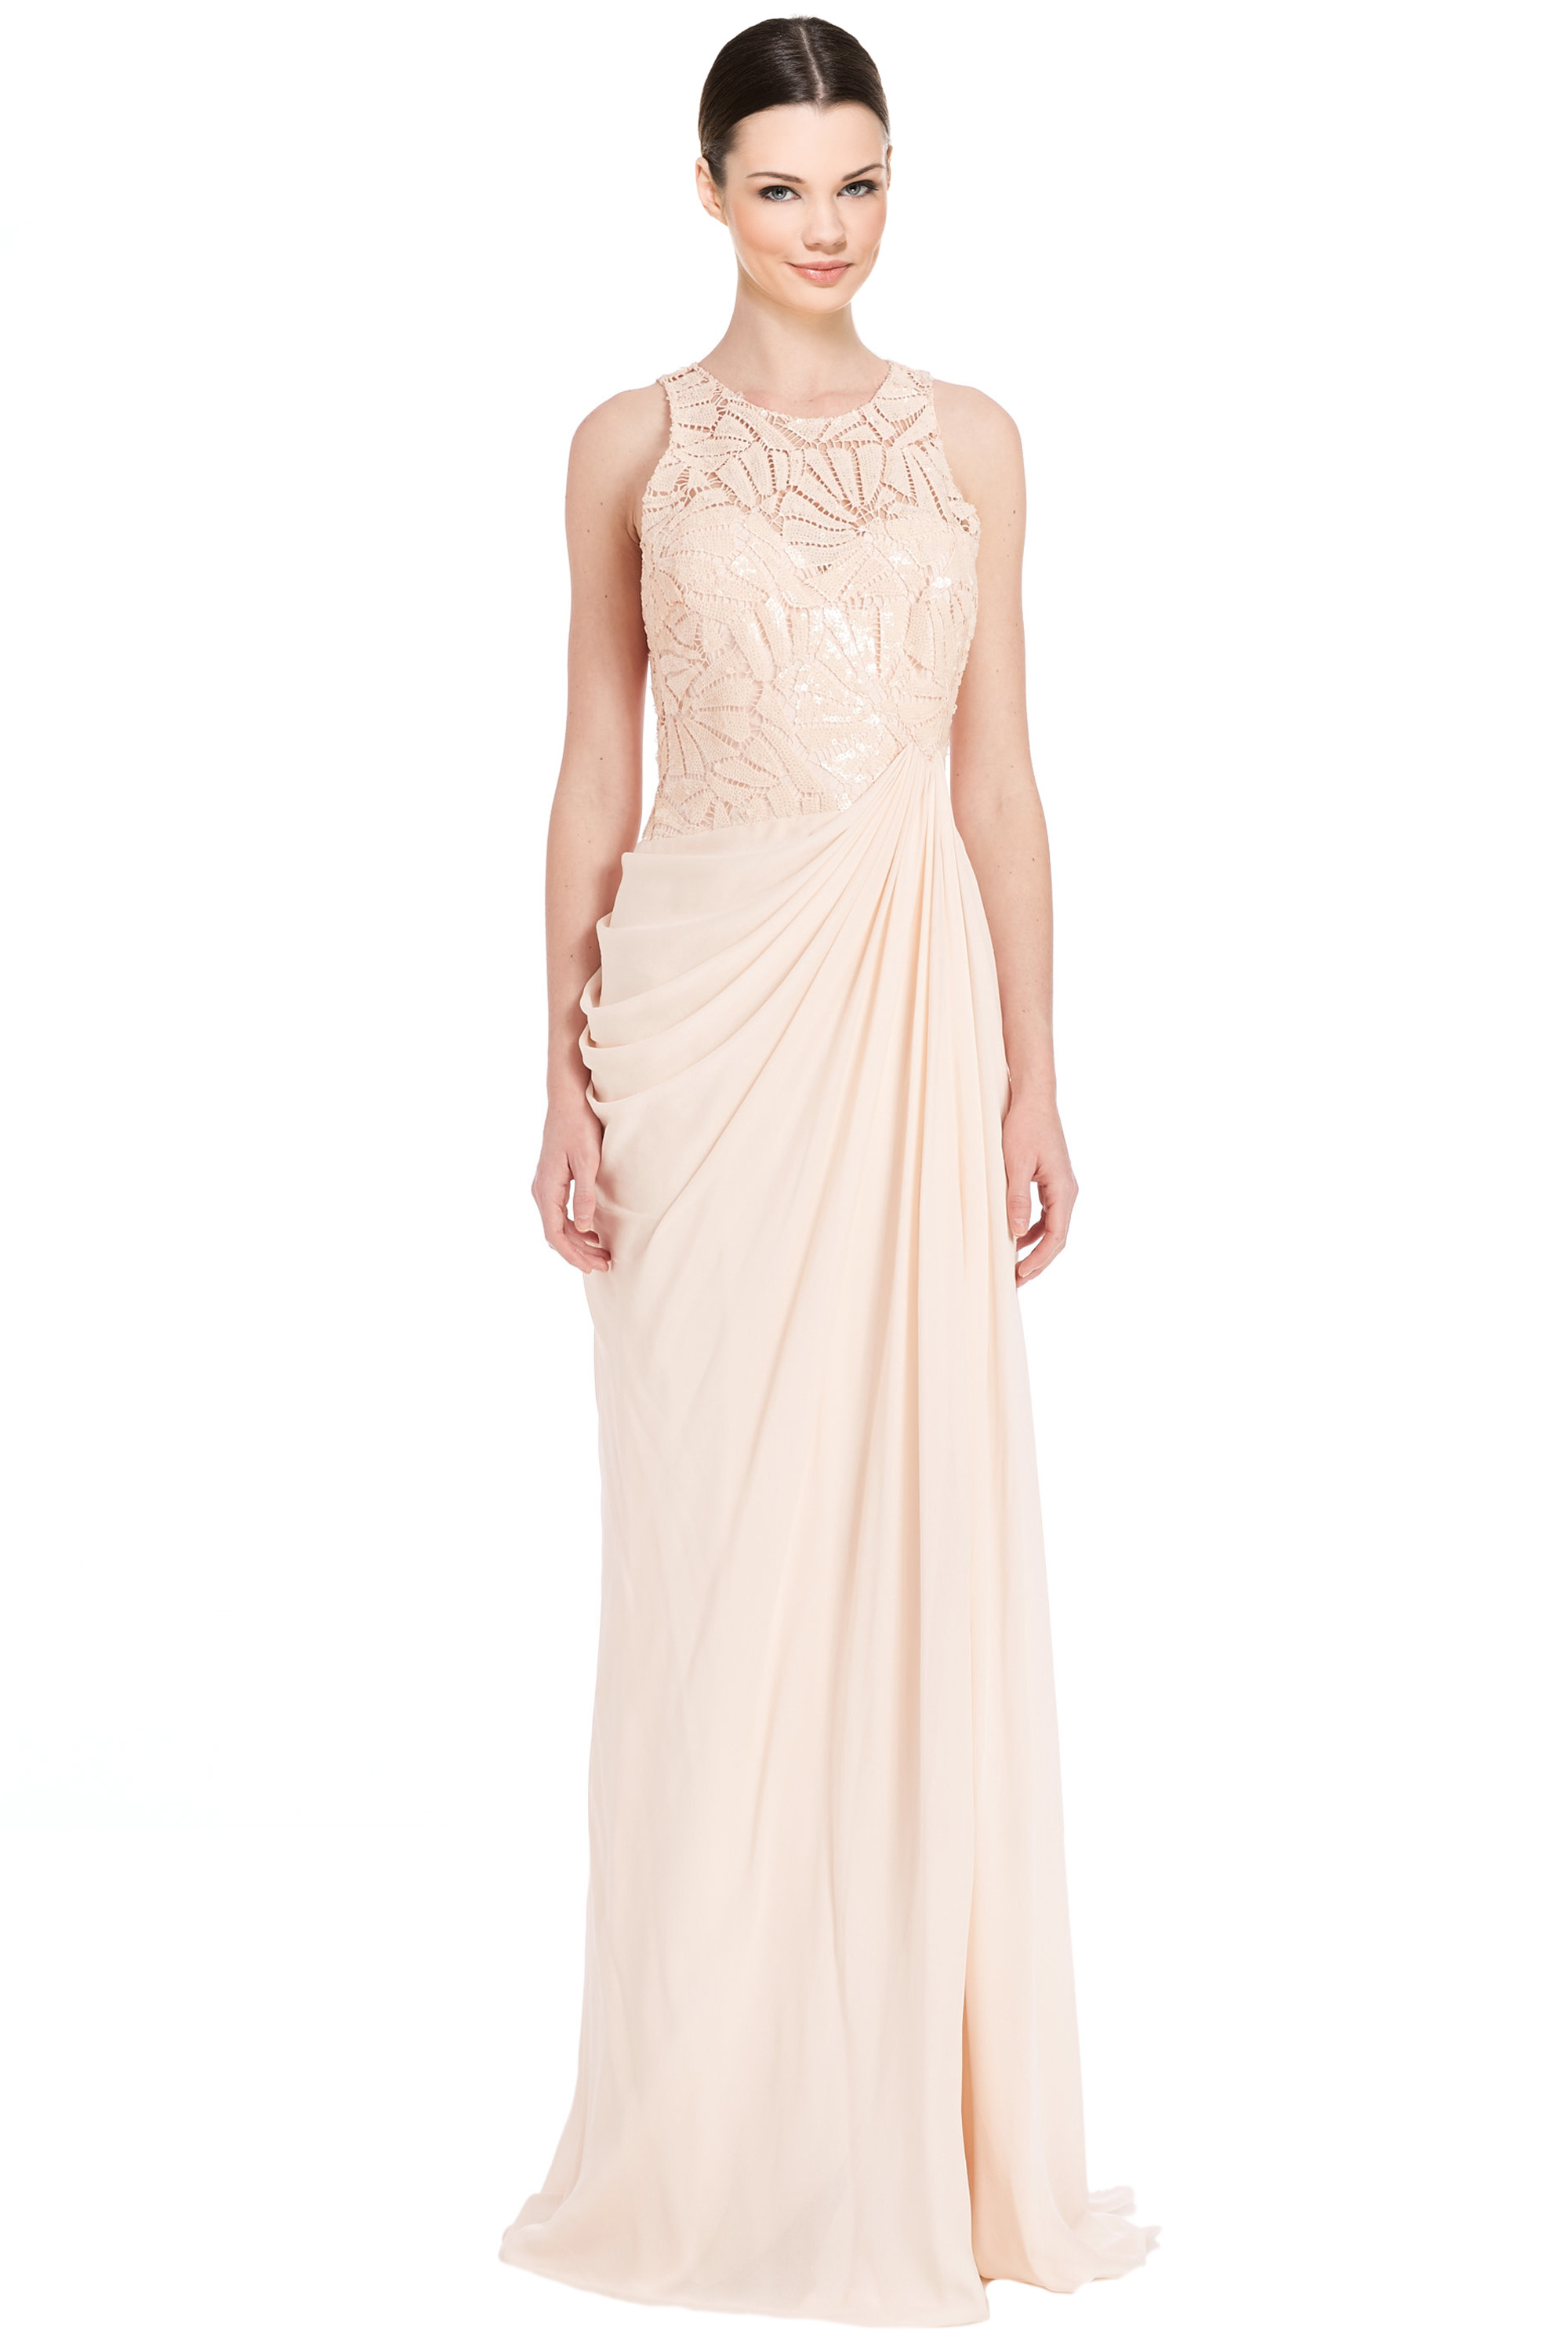 Badgley Mischka Blush Pink Draped Sequin Lace Evening Gown Dress 10 ...